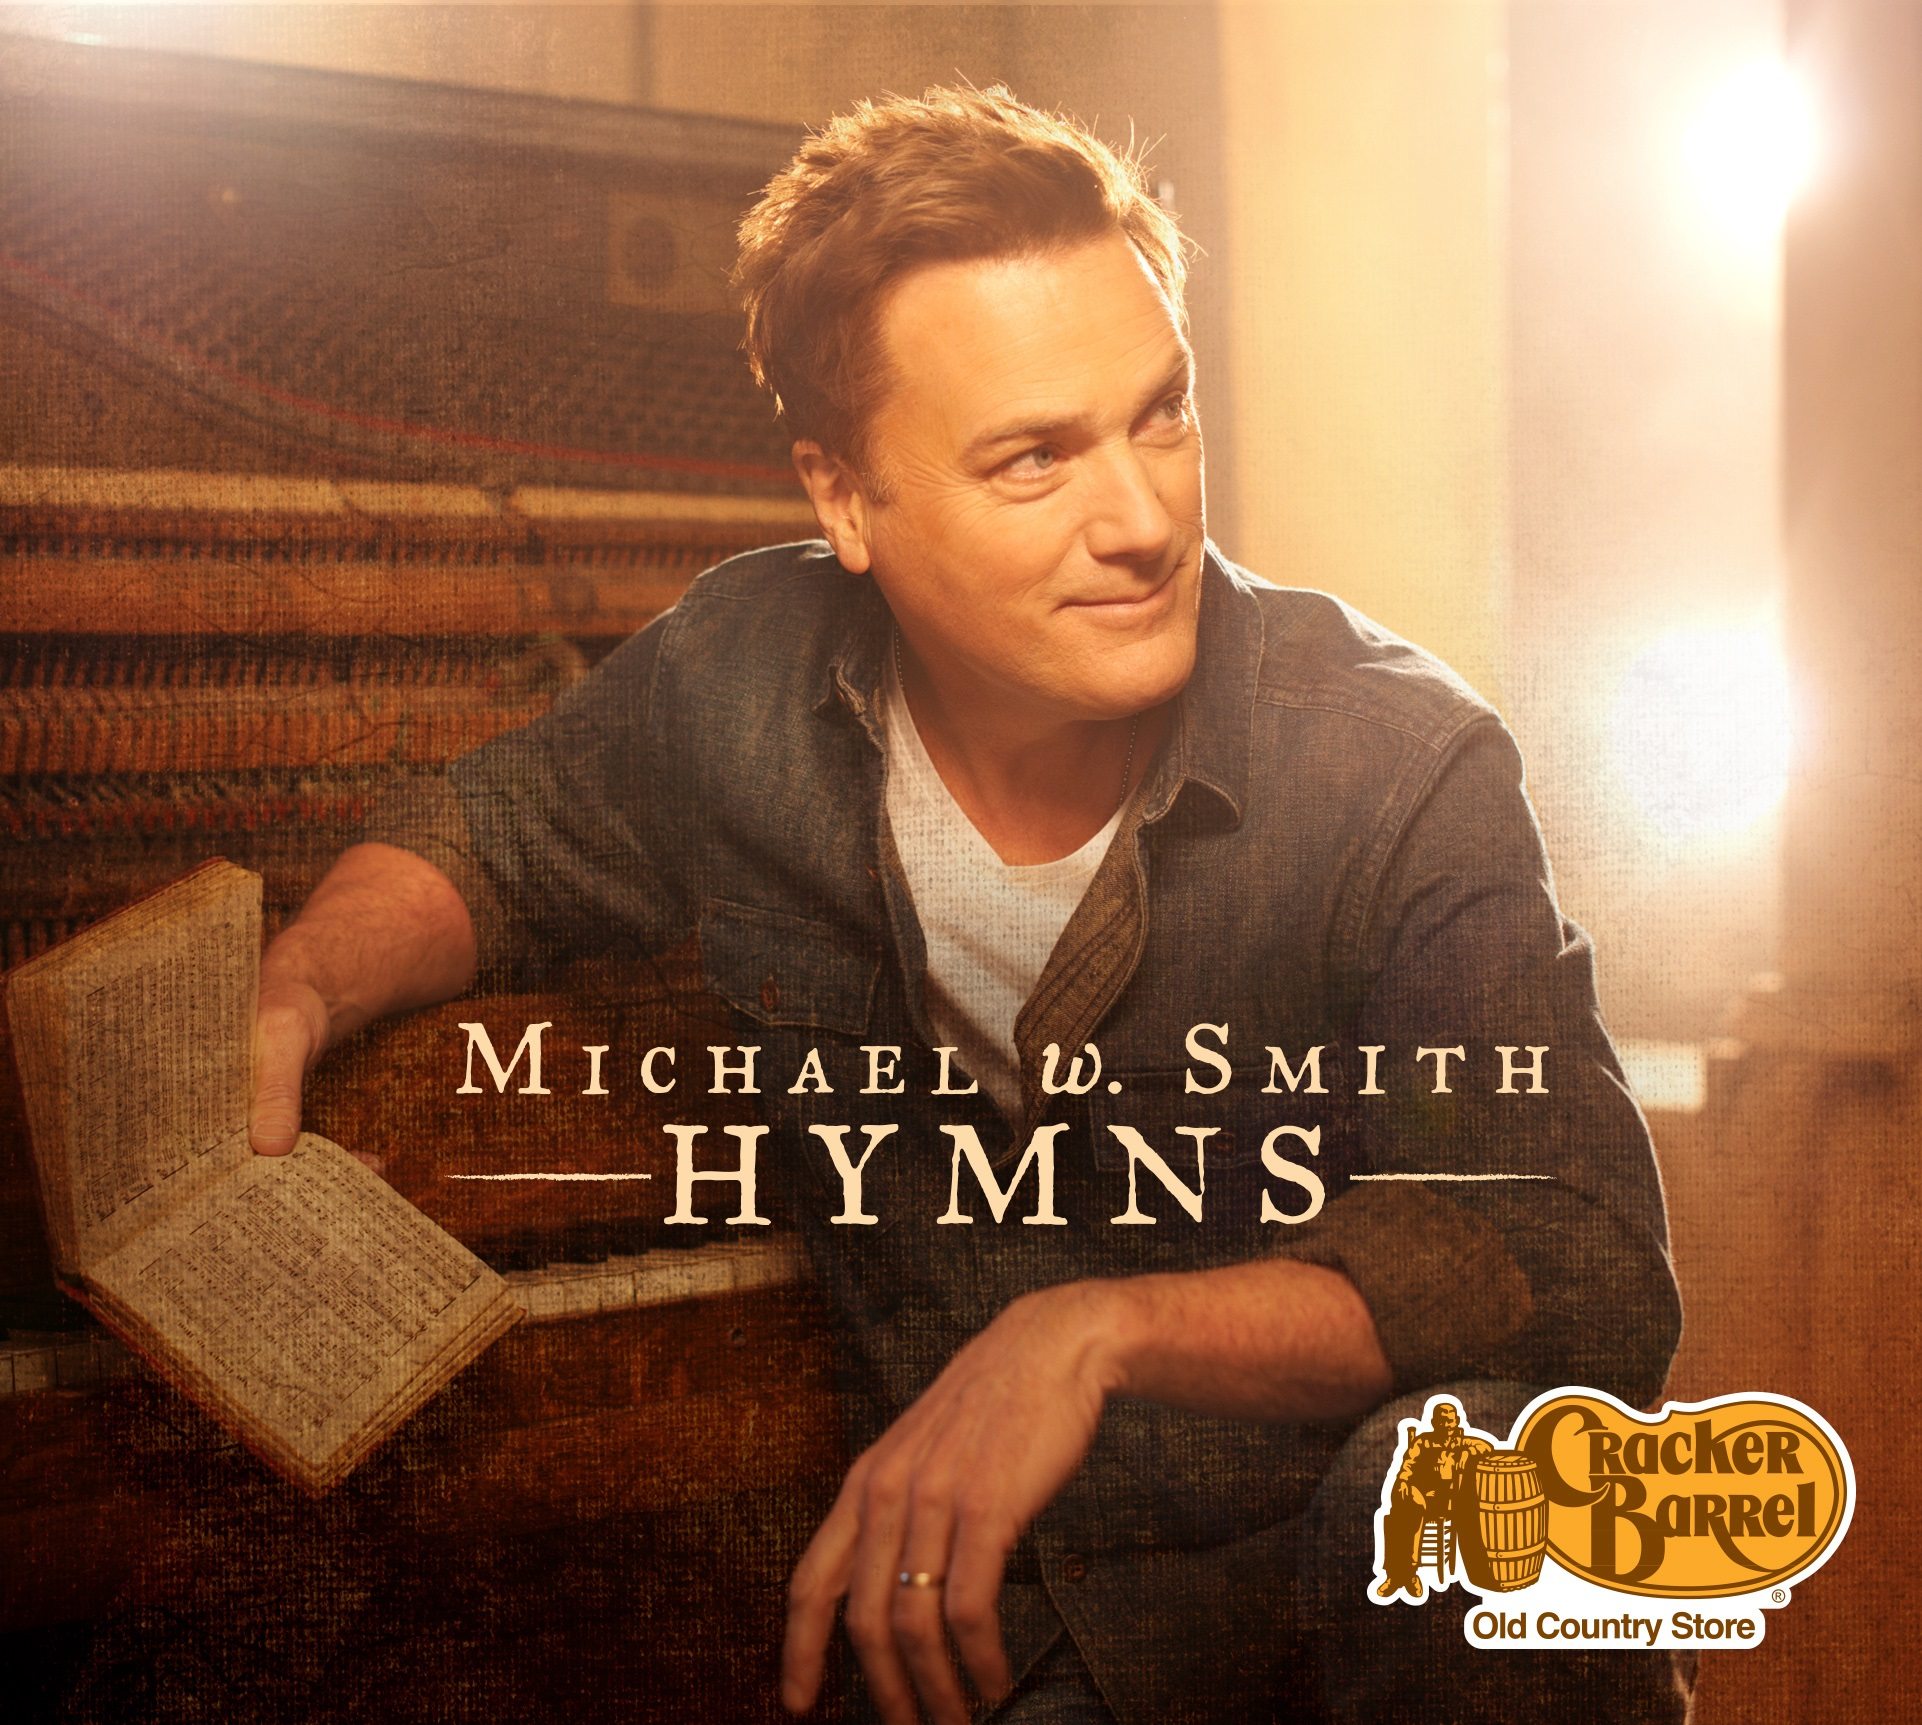 """Michael W. Smith's Album, """"Hymns"""", is Released Today, Exclusively at All Cracker Barrel Old Country Store® Locations and CrackerBarrel.com"""